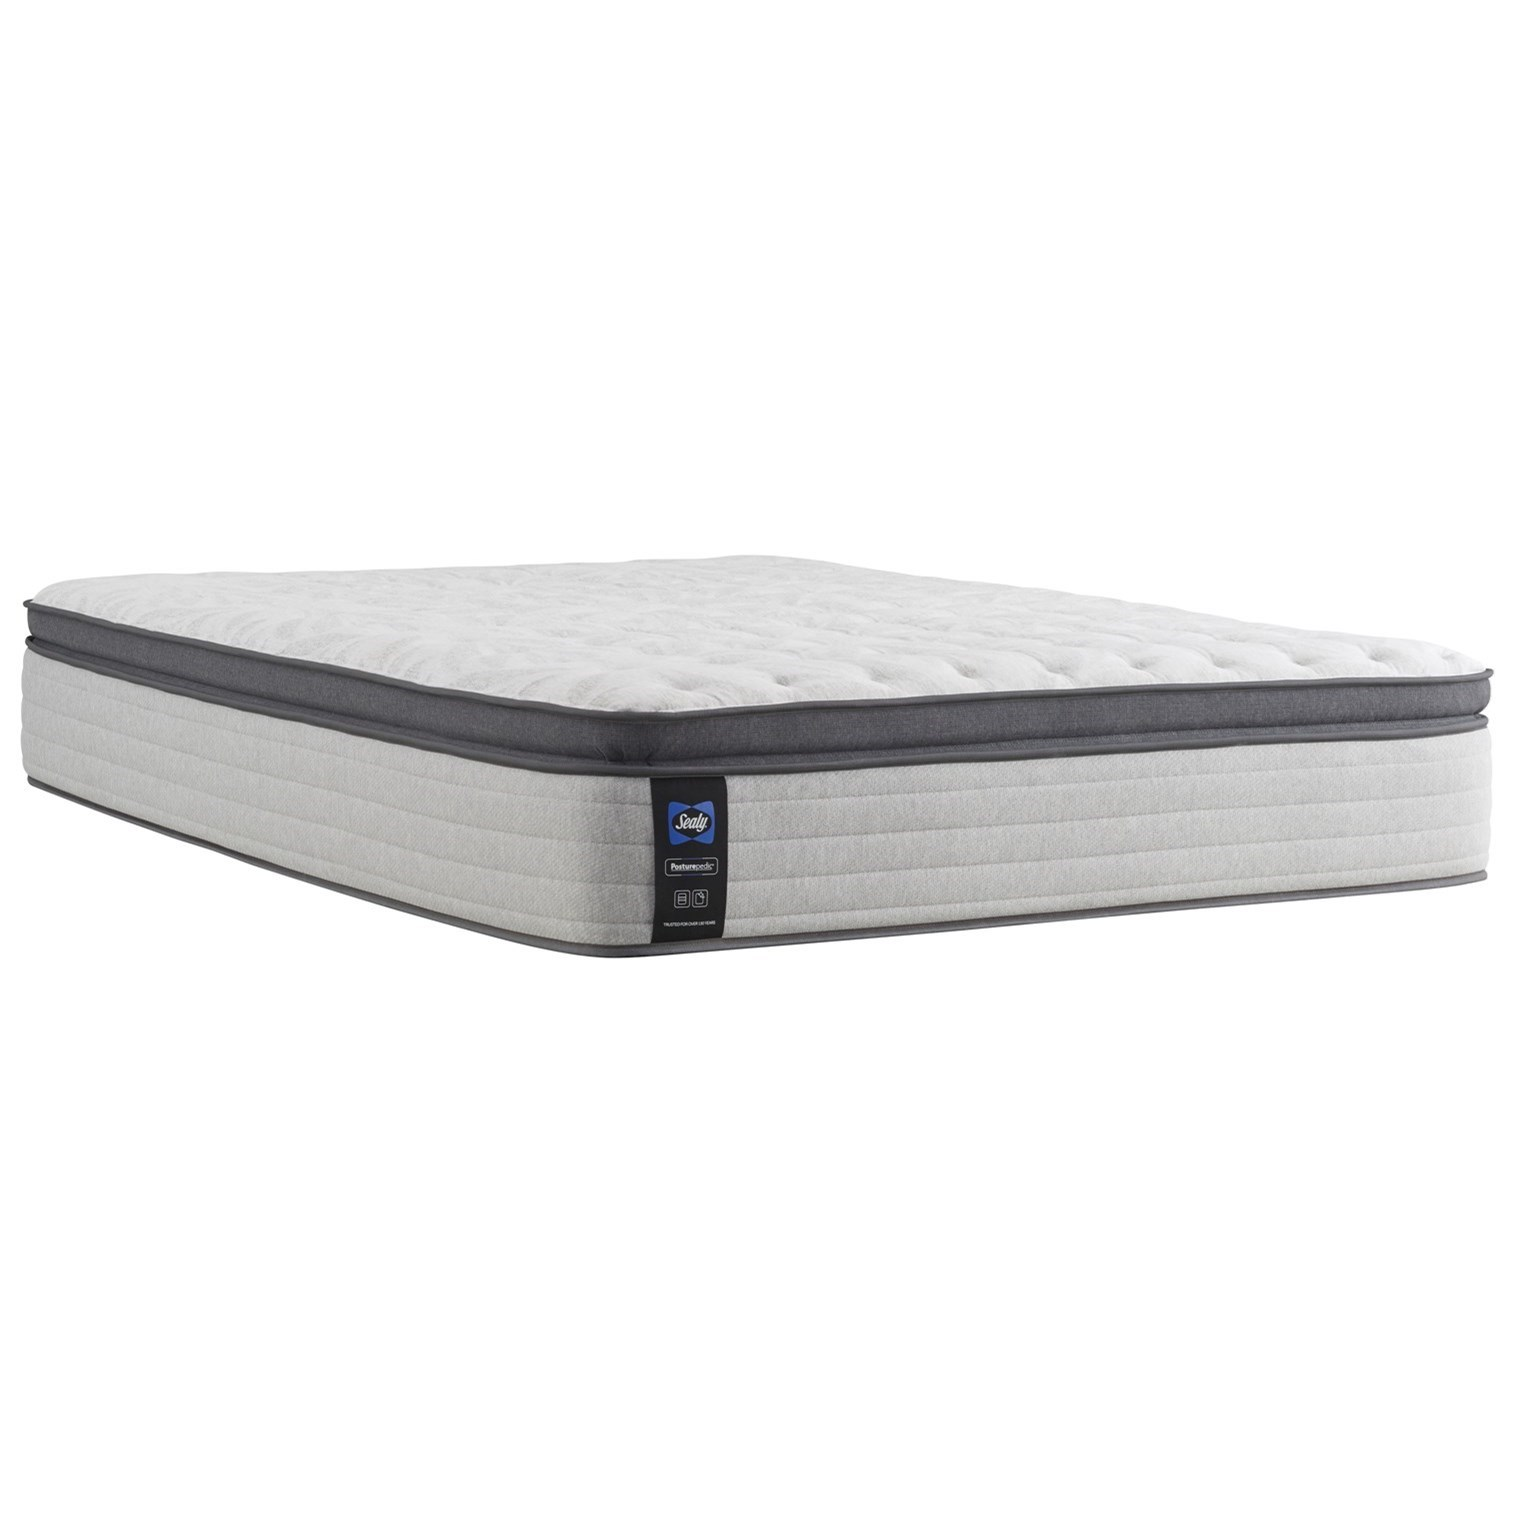 "Cal King 14"" Soft Euro Pillow Top Mattress"